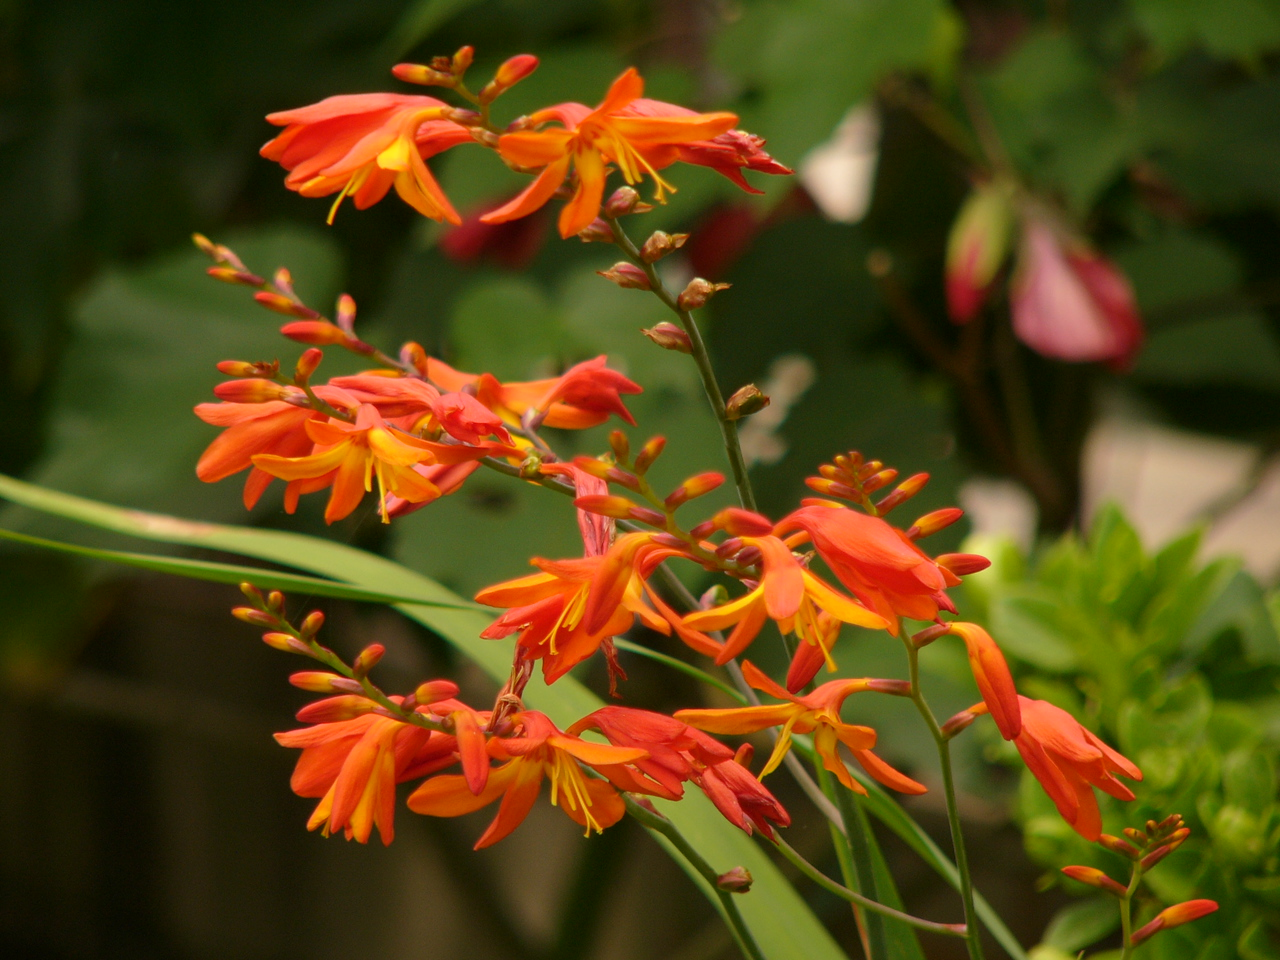 Photograph taken with DMC-FZ10 by David Fong. I have no idea what flower this is!